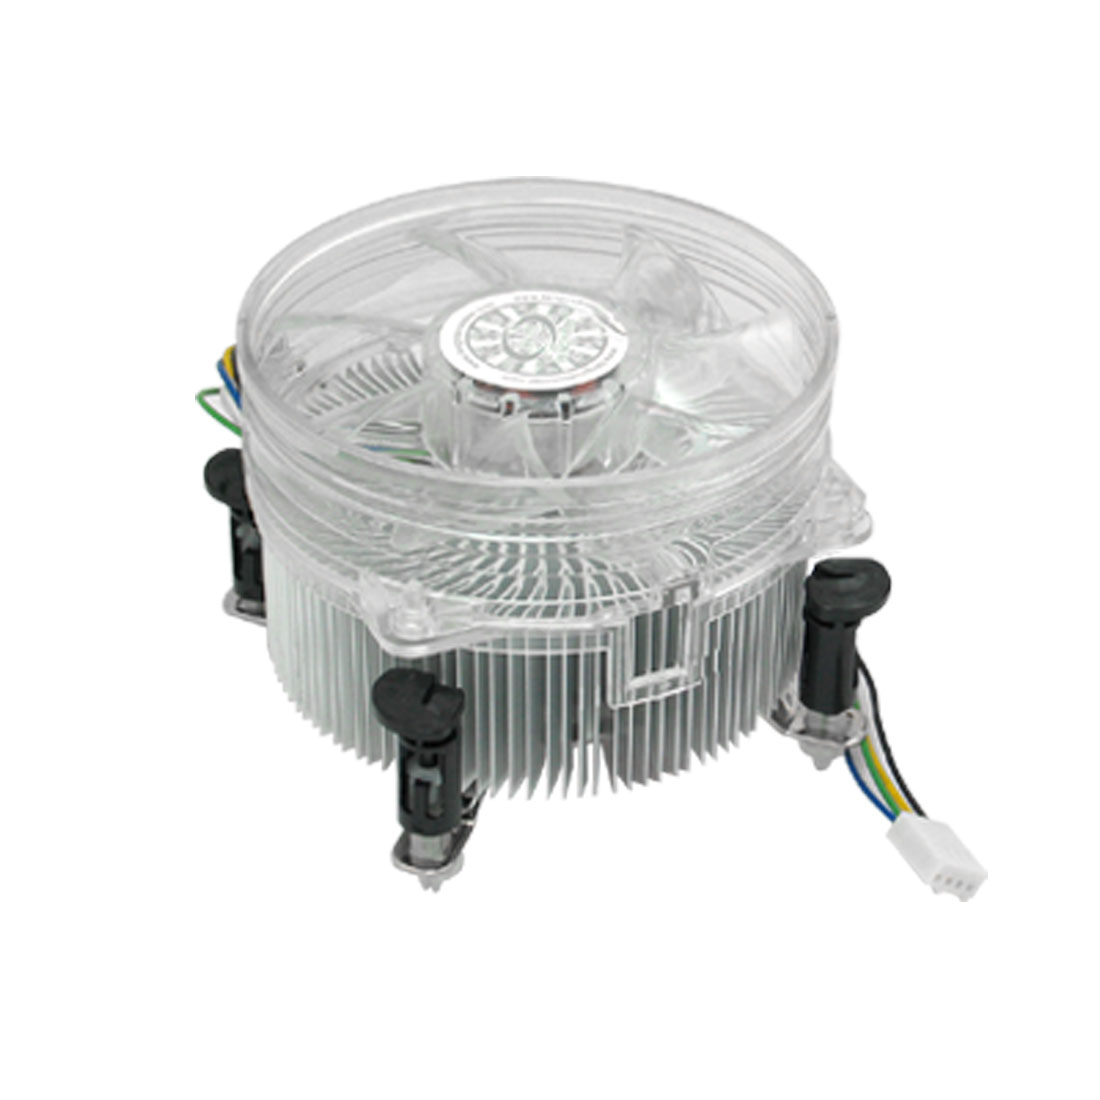 Clear White Cooling Fan CPU Cooler for Intel Core2 LGA775